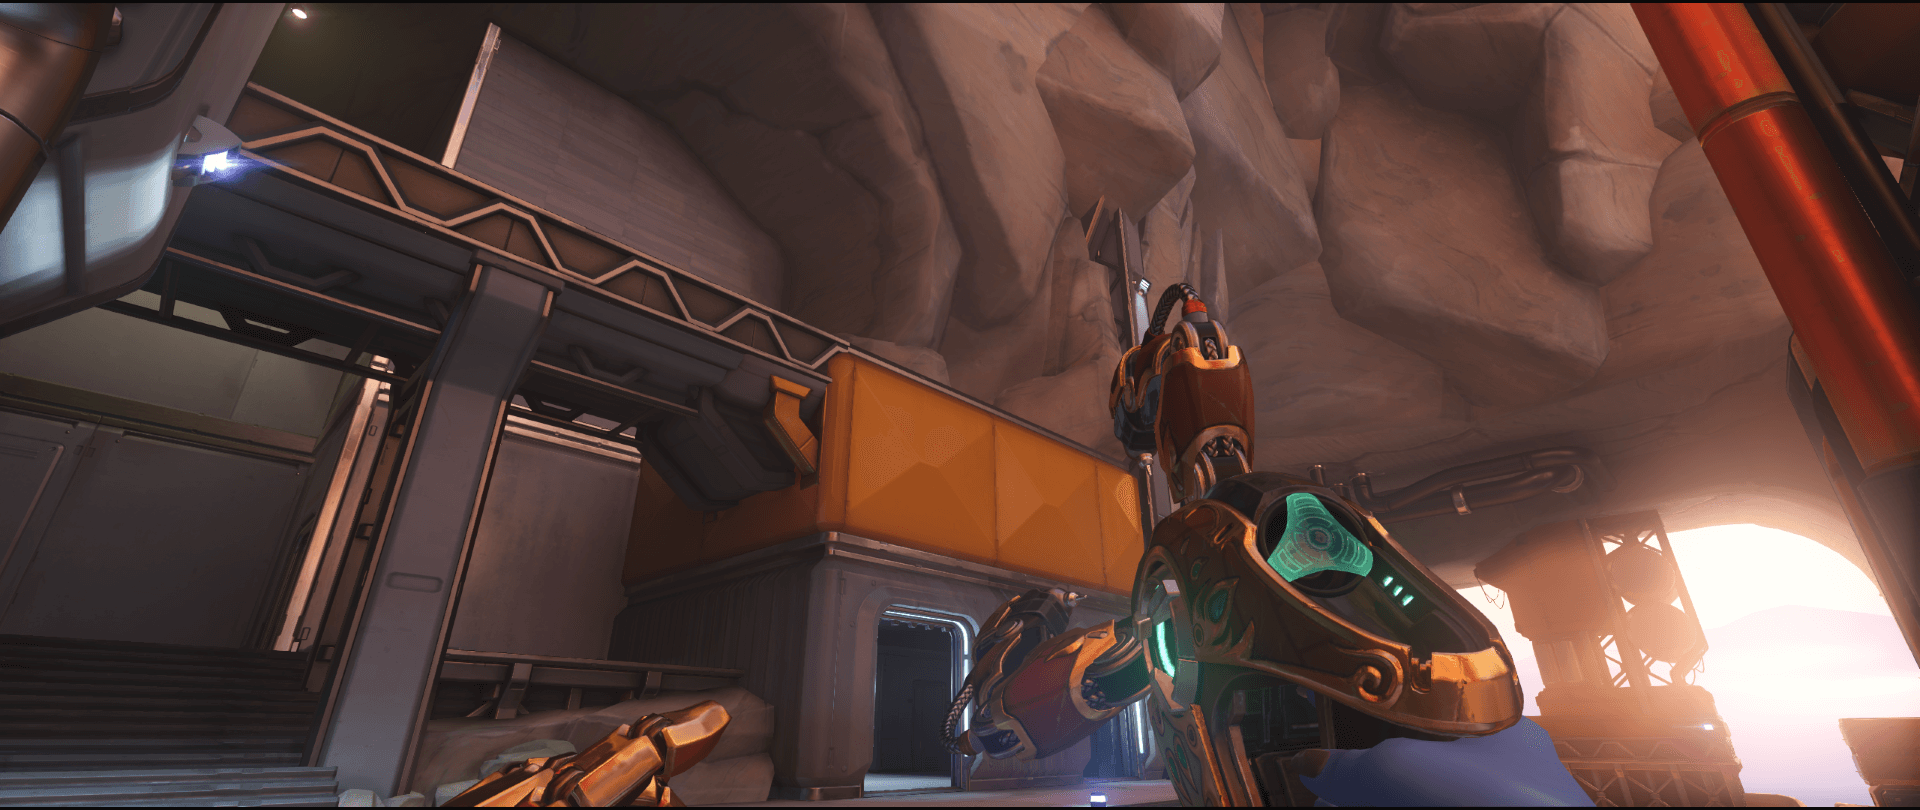 Symmetra shield generator spot Watchpoint Gibraltar main second point.png